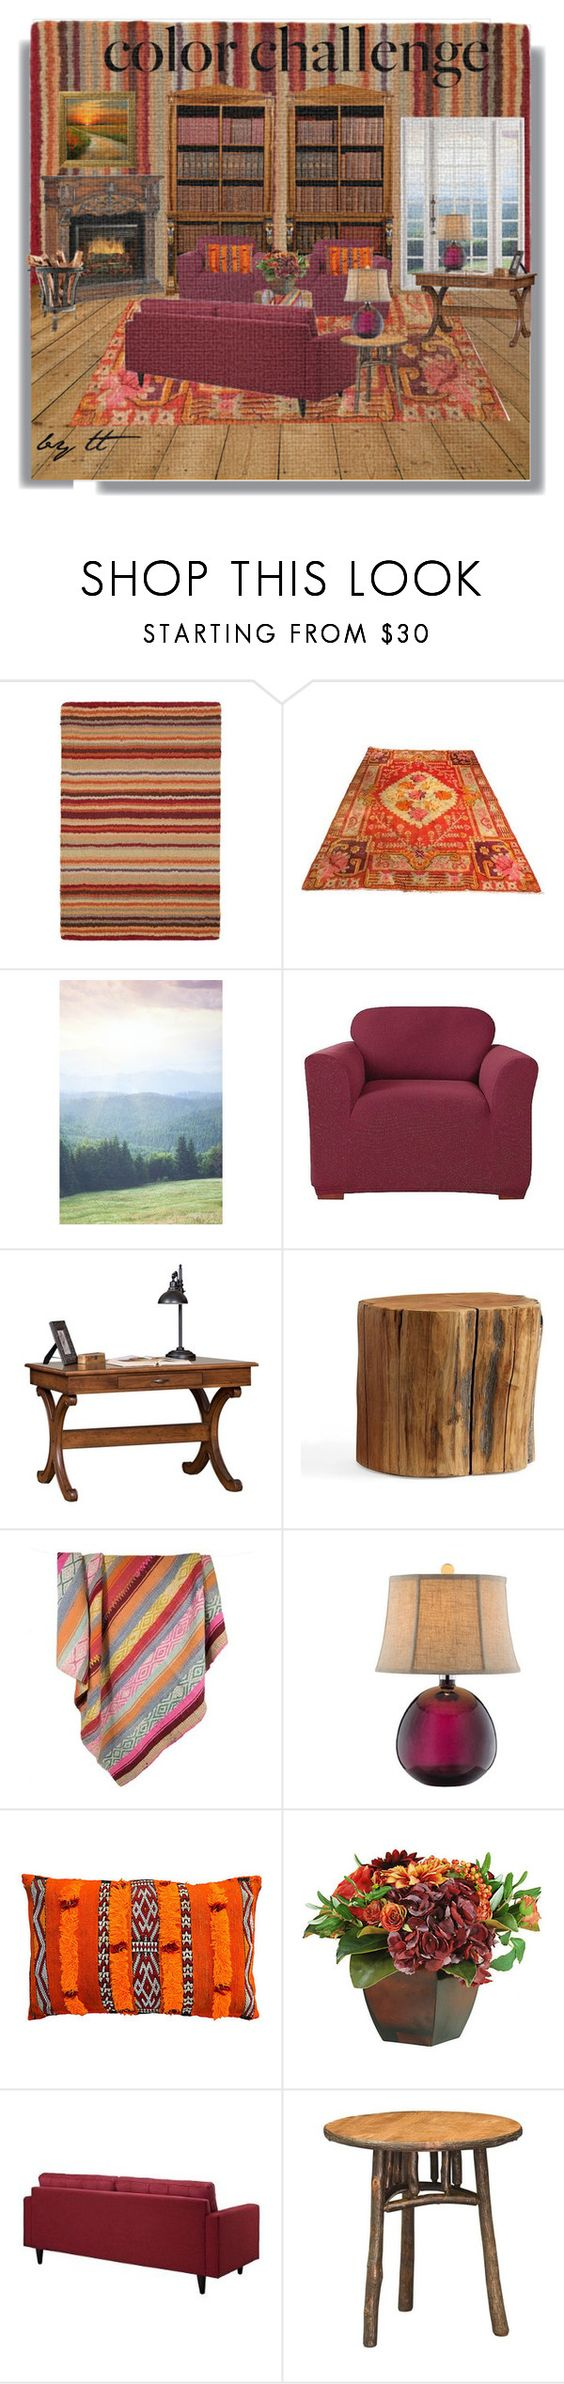 """Burgundy and Orange Color Challenge...by tt"" by fowlerteetee ❤ liked on Polyvore featuring interior, interiors, interior design, home, home decor, interior decorating, Surya, Plum & Bow, Sure Fit and DutchCrafters"